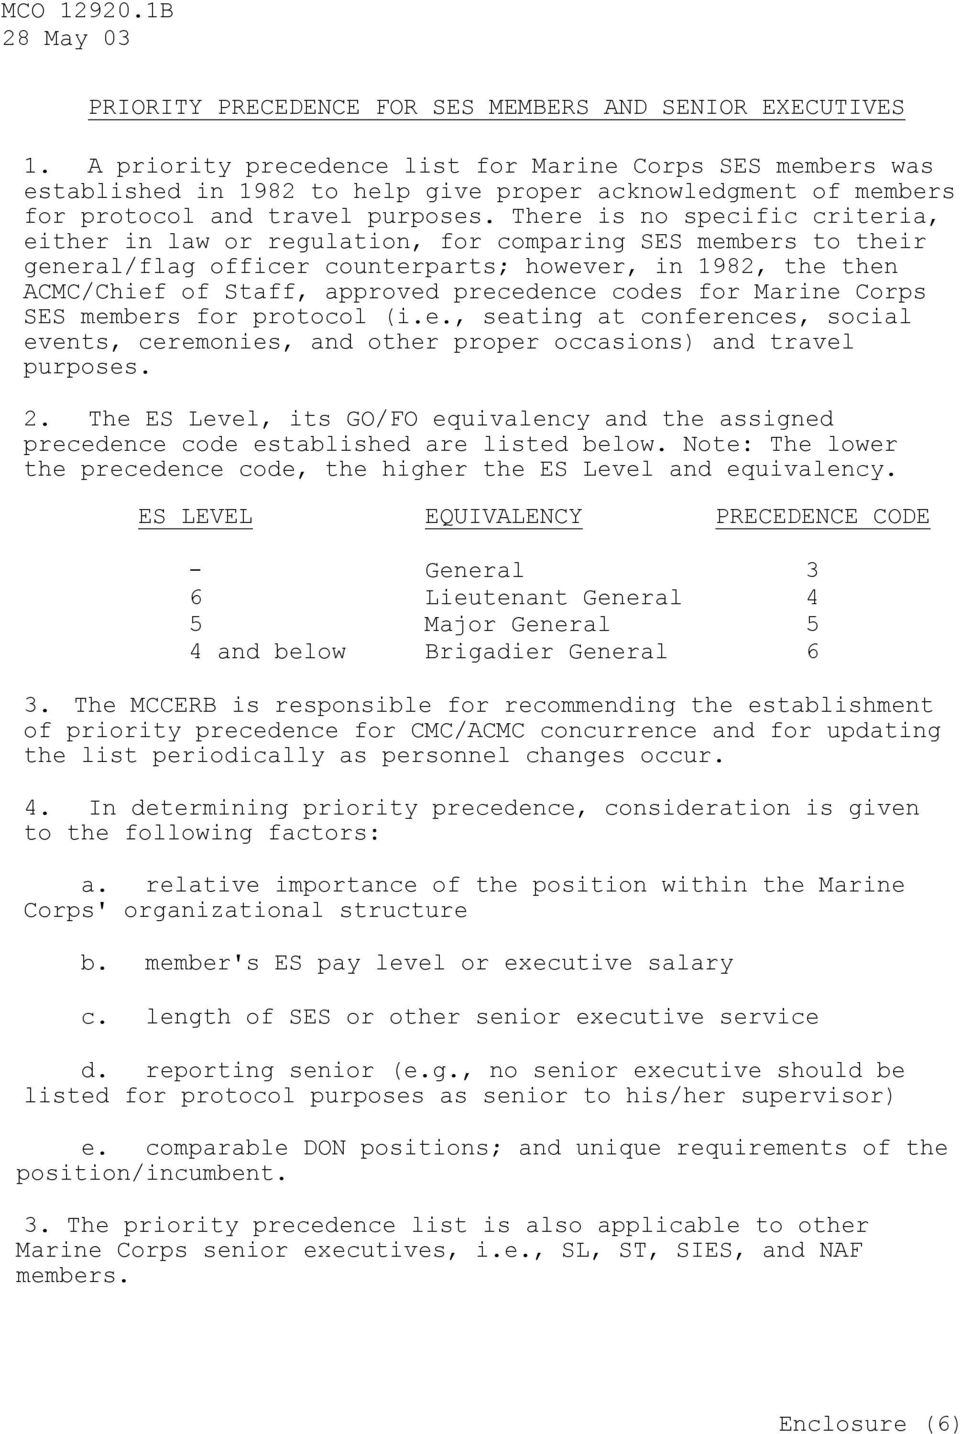 There is no specific criteria, either in law or regulation, for comparing SES members to their general/flag officer counterparts; however, in 1982, the then ACMC/Chief of Staff, approved precedence